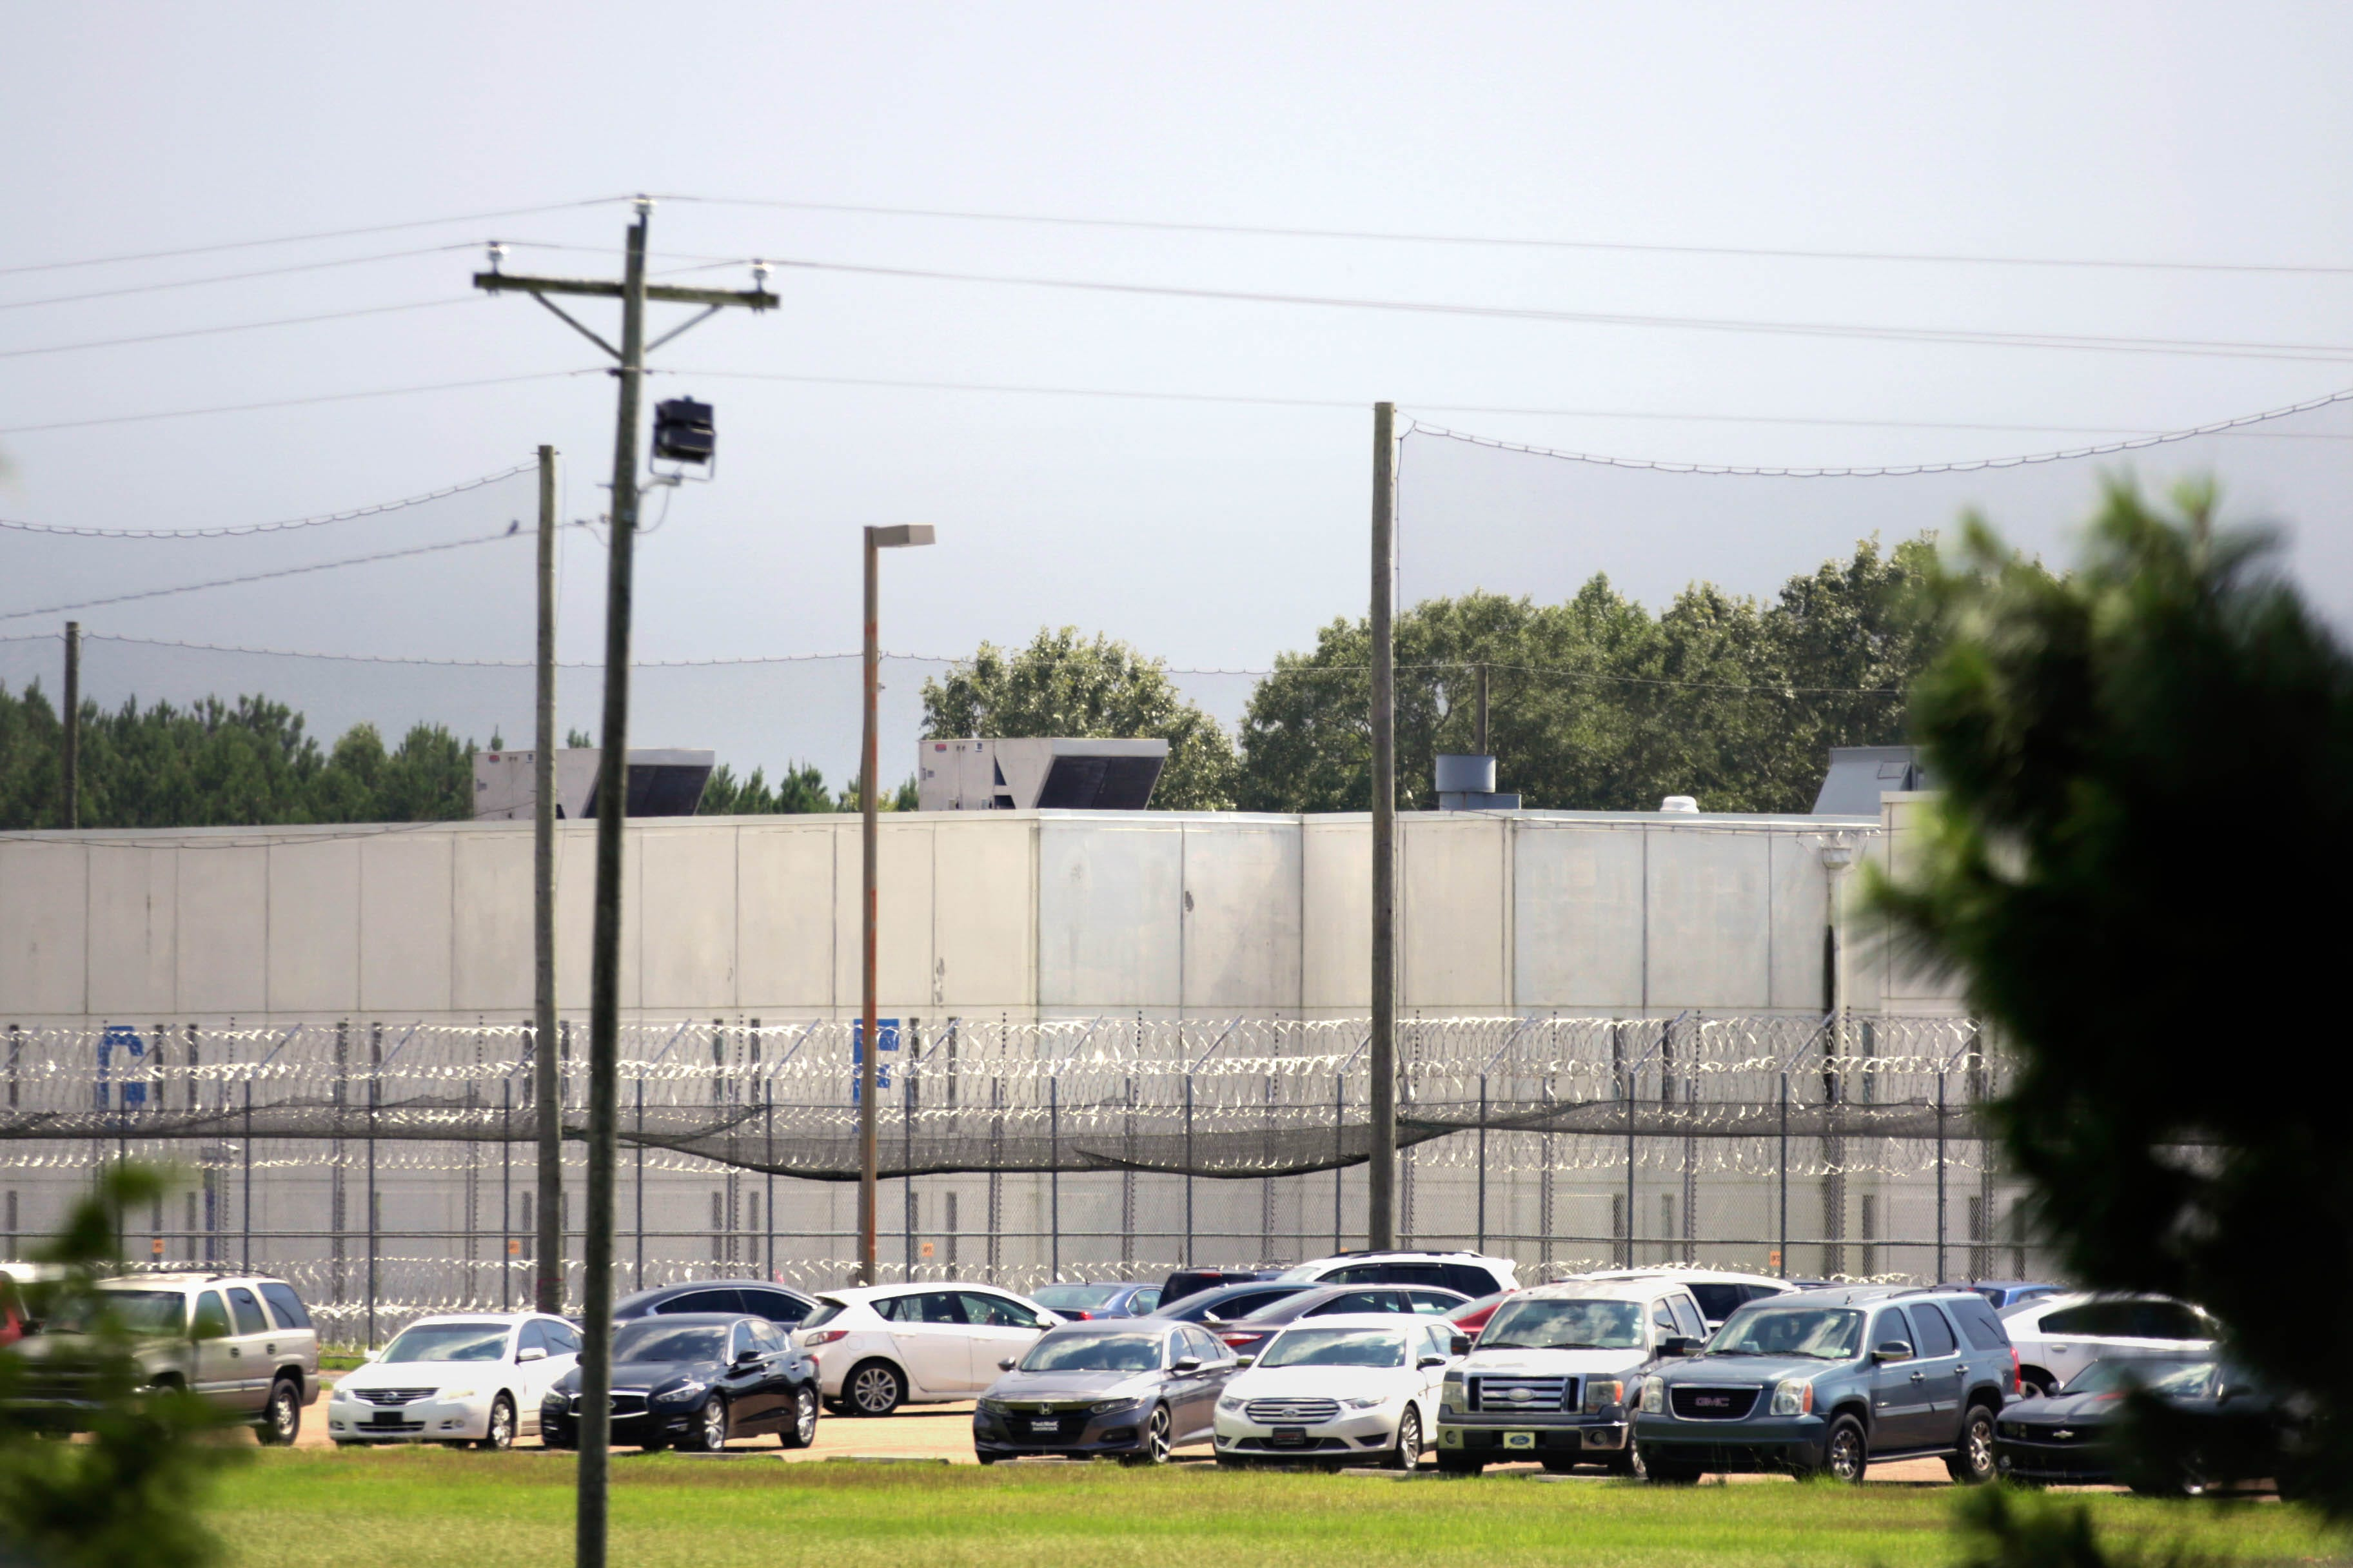 The Wilkinson County Correctional Facility in Woodville, Miss.